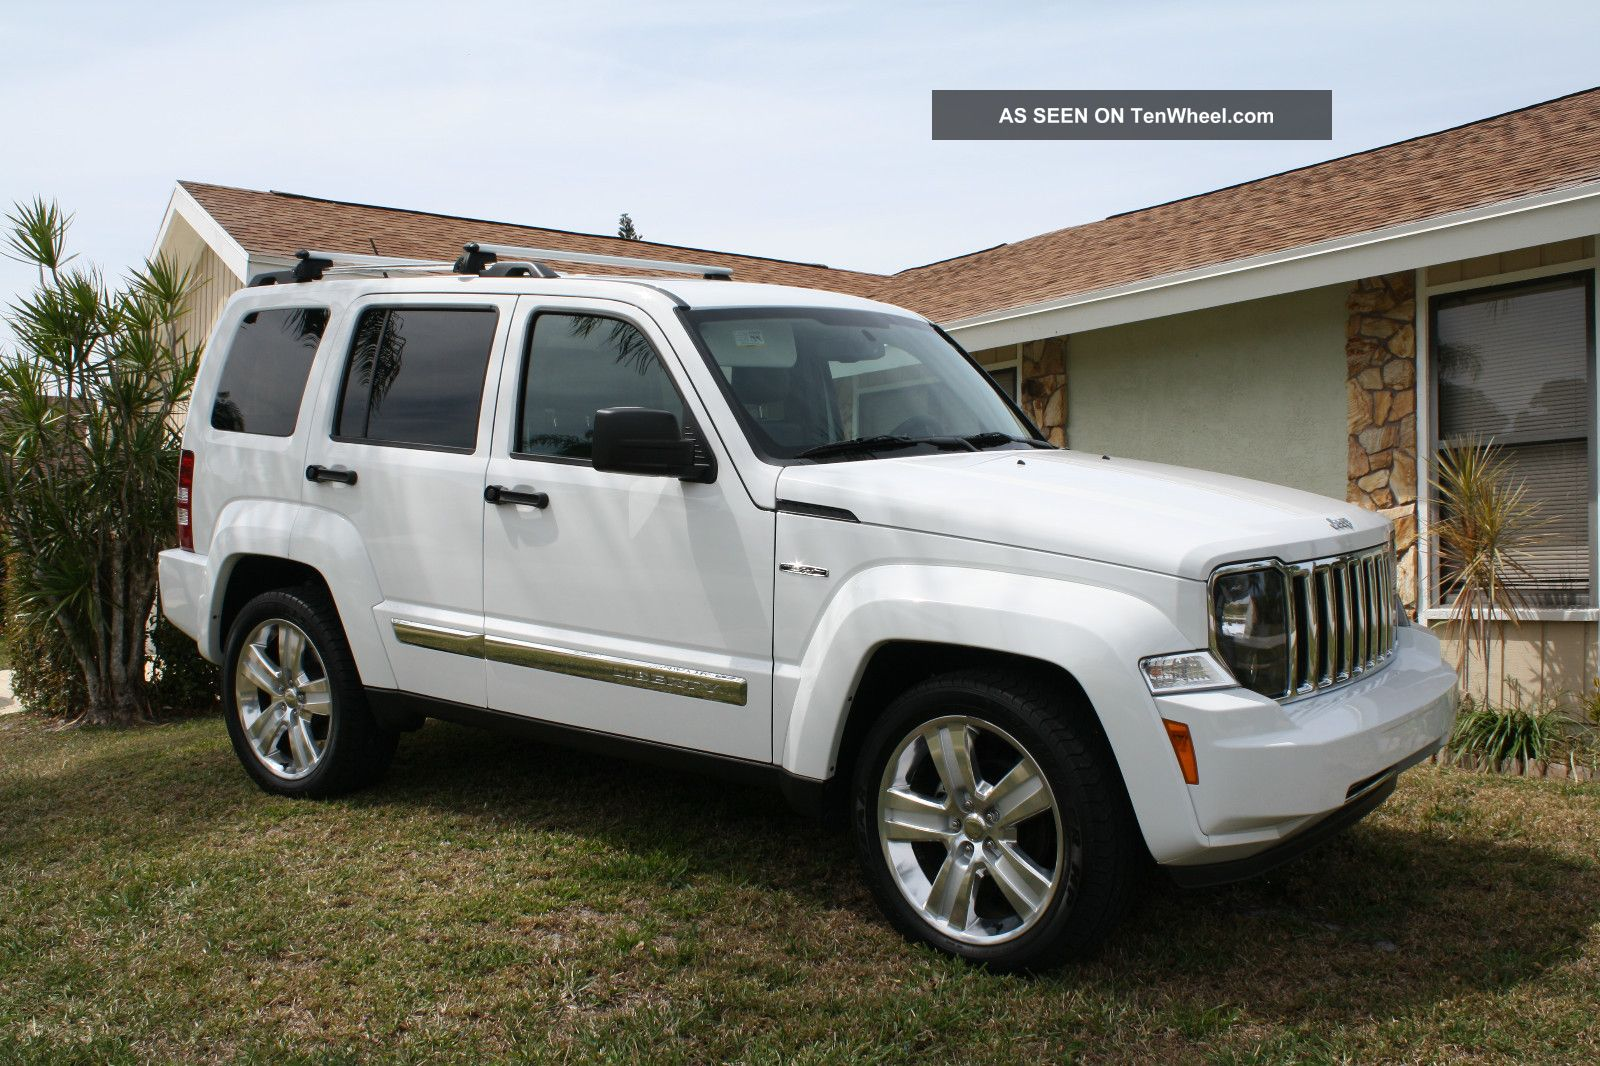 2012 jeep liberty jet edition fully loaded 20 tow. Black Bedroom Furniture Sets. Home Design Ideas